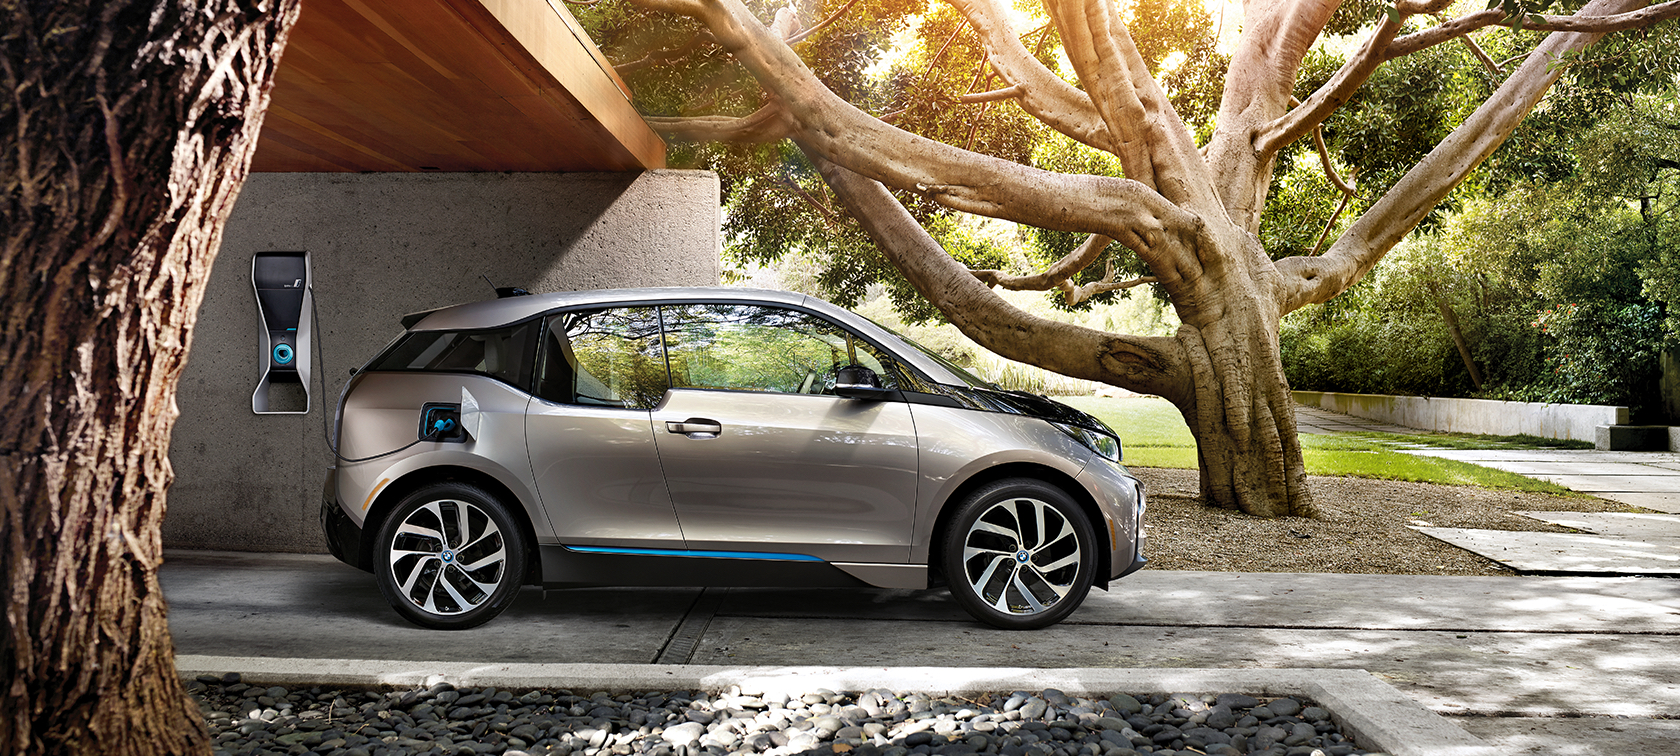 Electric Cars Sustainability And Services Bmw Canada